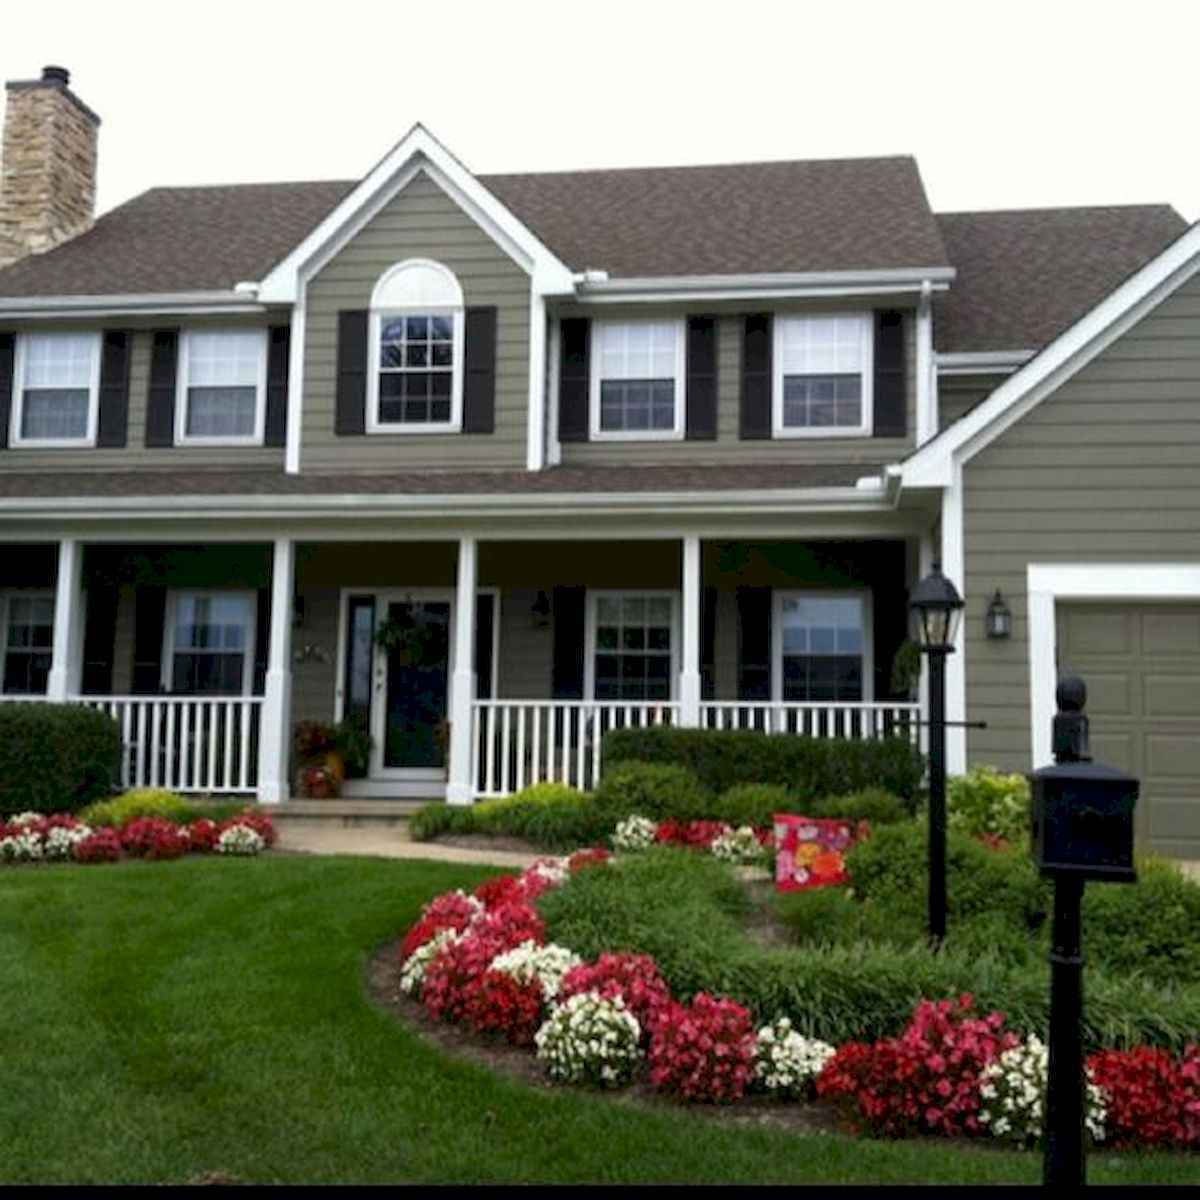 40 Cool Front Yard Garden Landscaping Design Ideas And Remodel (15)